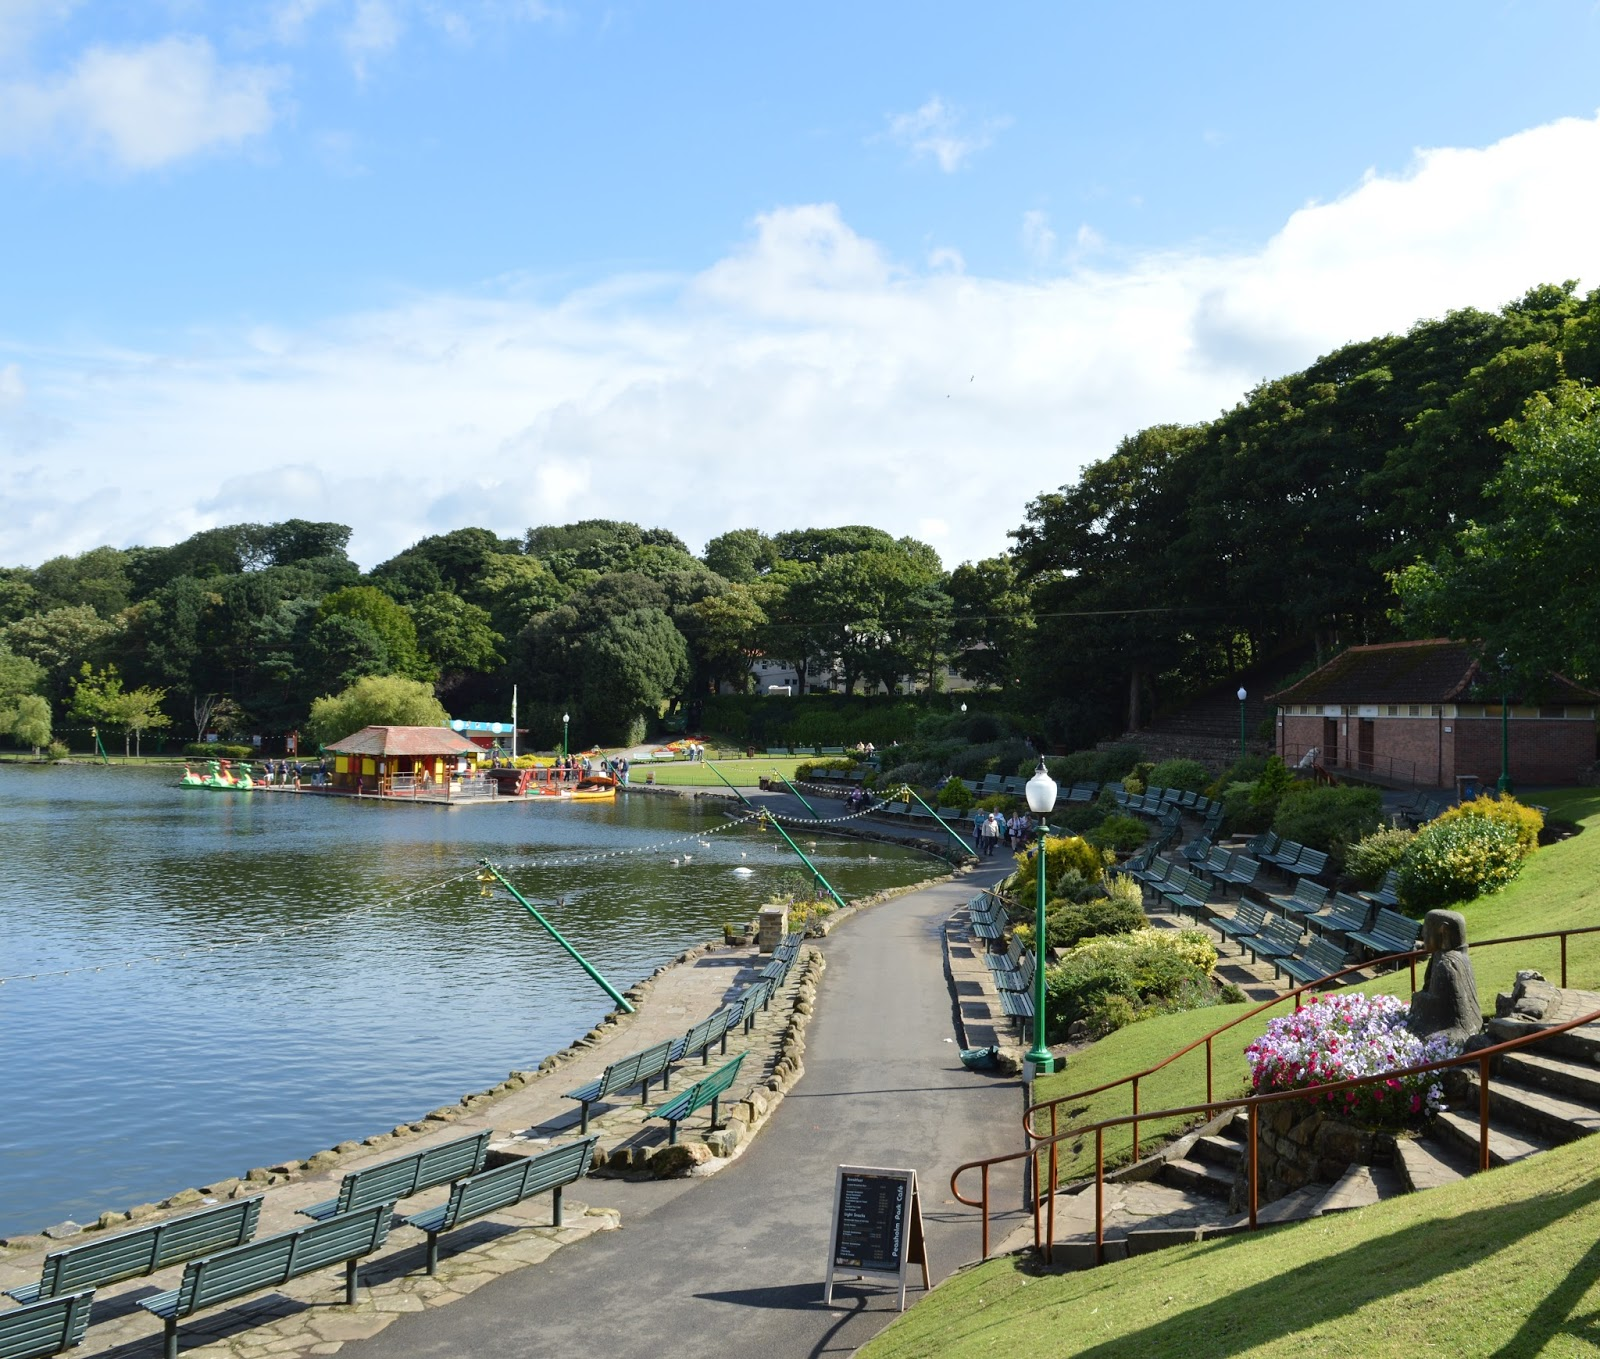 The Best Family Days Out in North Yorkshire  - Peasholm Park Lake Scarborough